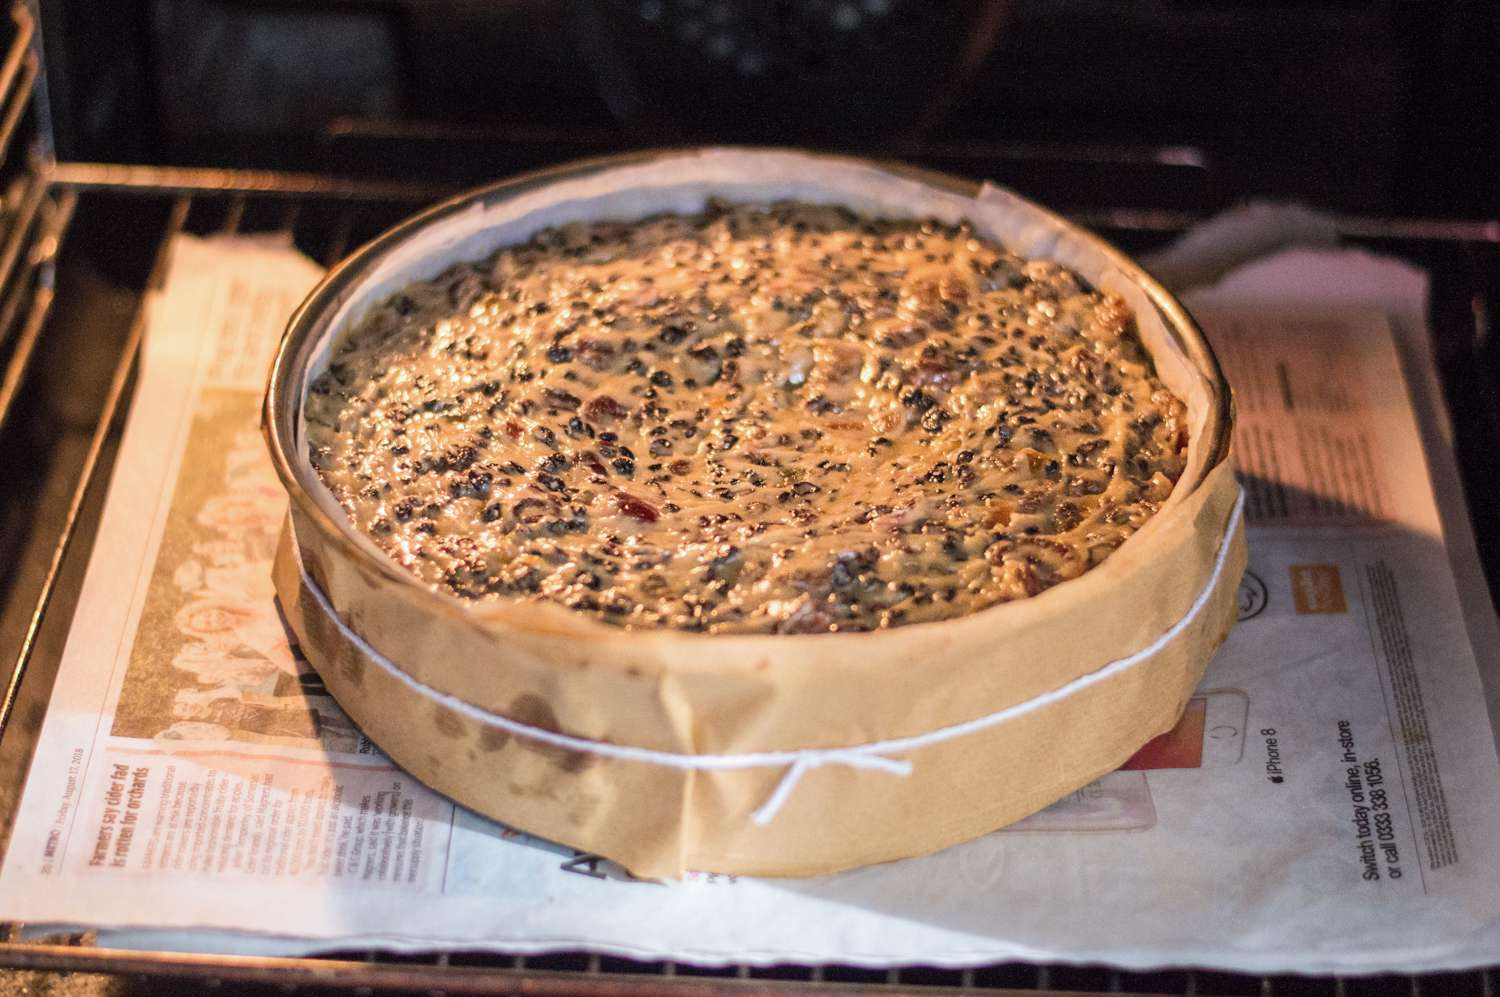 British Christmas cake baking in the oven